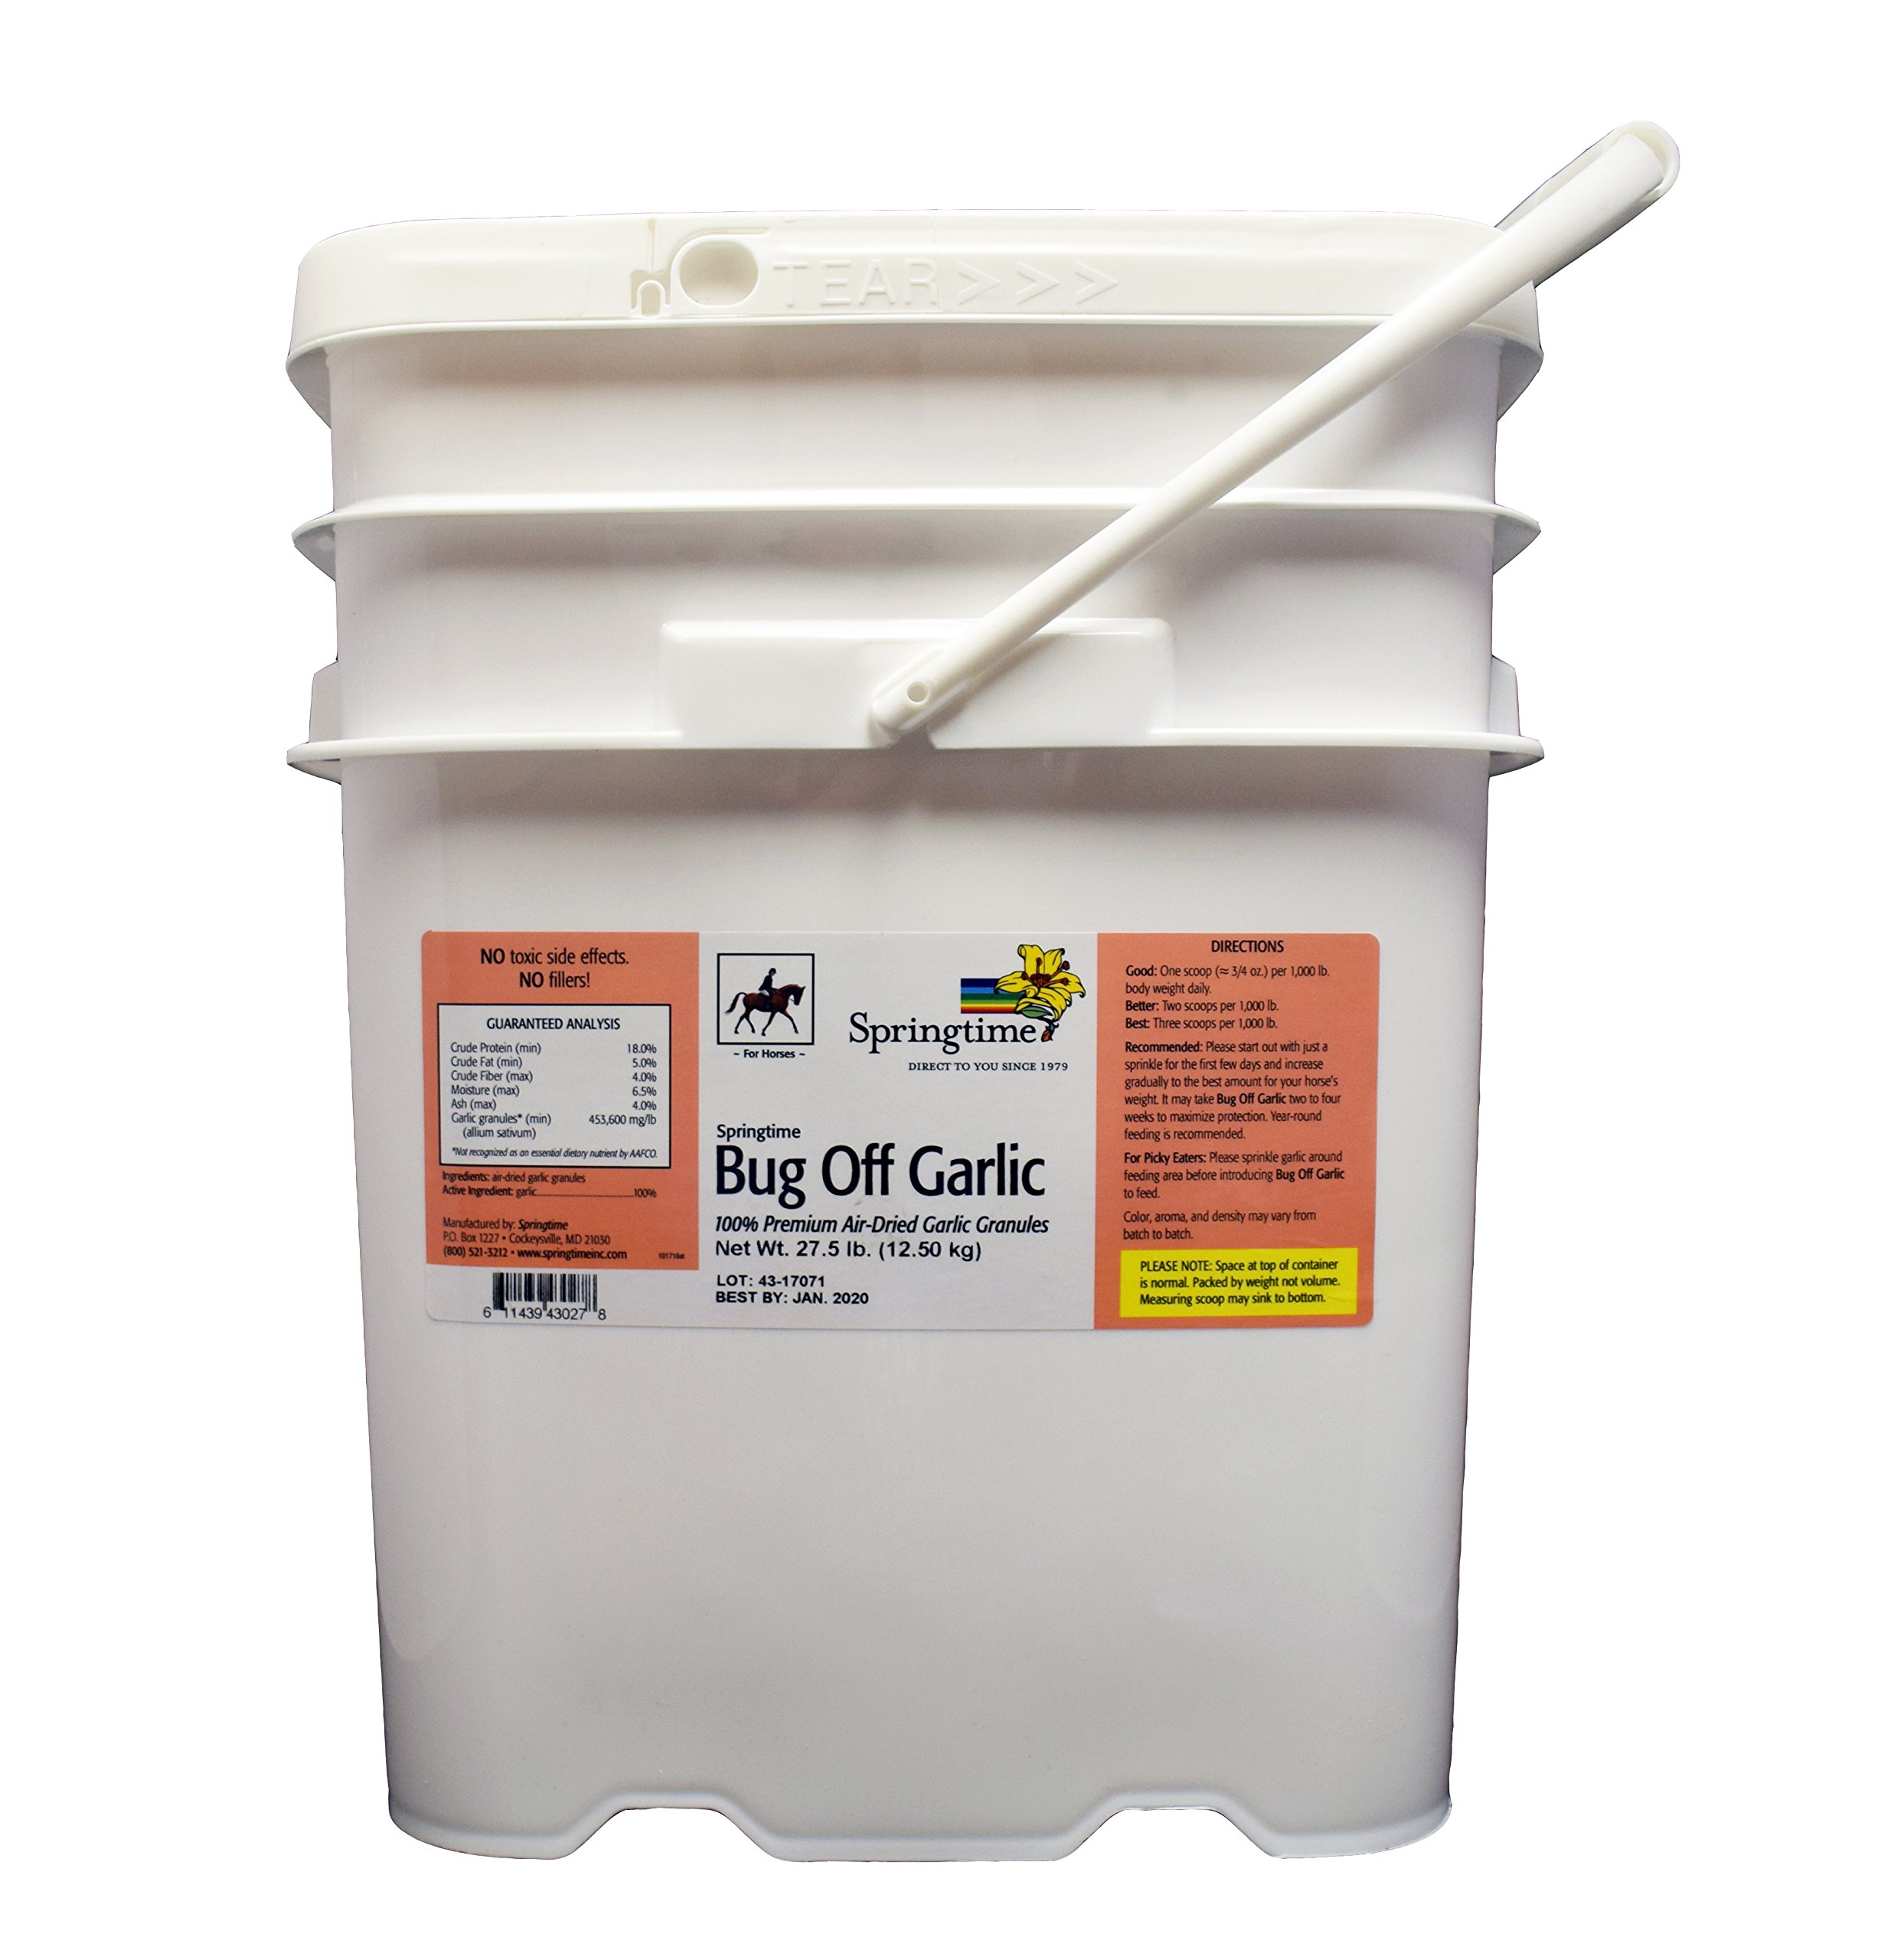 Springtime Bug Off Garlic for Horses - 27.5 lb. - Air-dried garlic granules provide a safe, 24-hour shield against flies, ticks, mosquitoes, gnats, and other biting insects